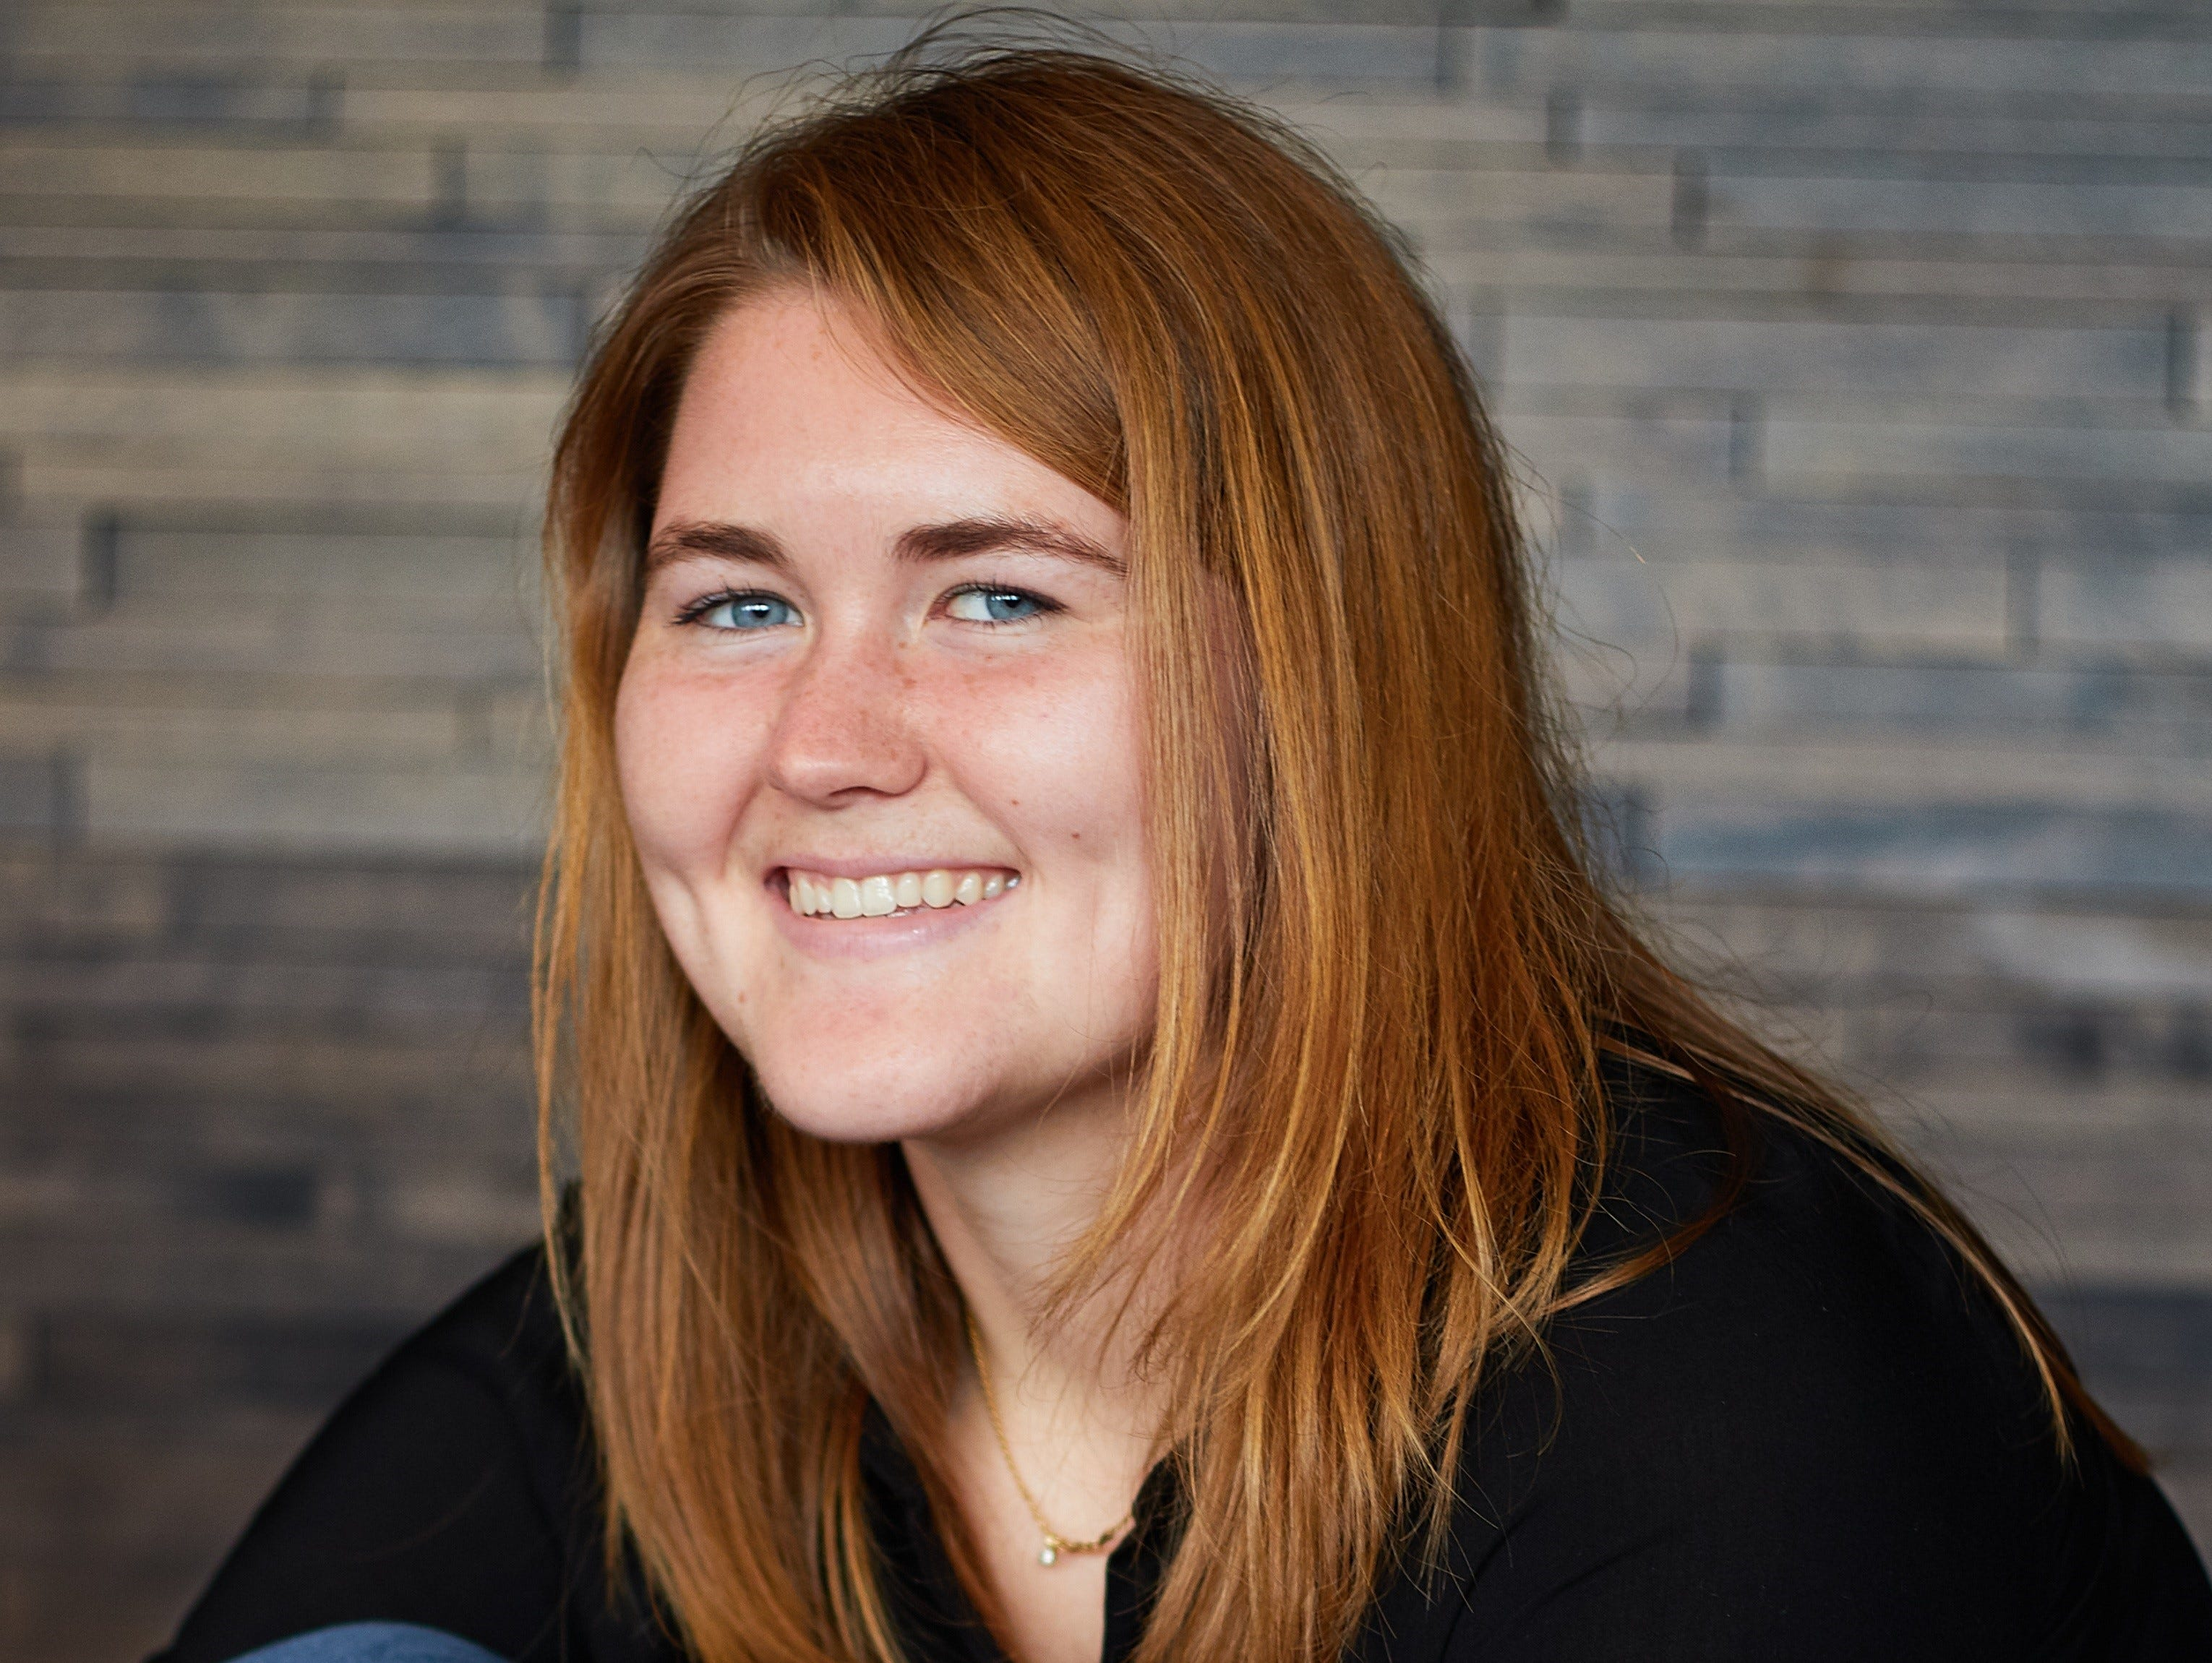 Jordan Witter, from Chandler Basha, is the azcentral.com Sports Awards Female Athlete of the Week, presented by La-Z-Boy Furniture Galleries,